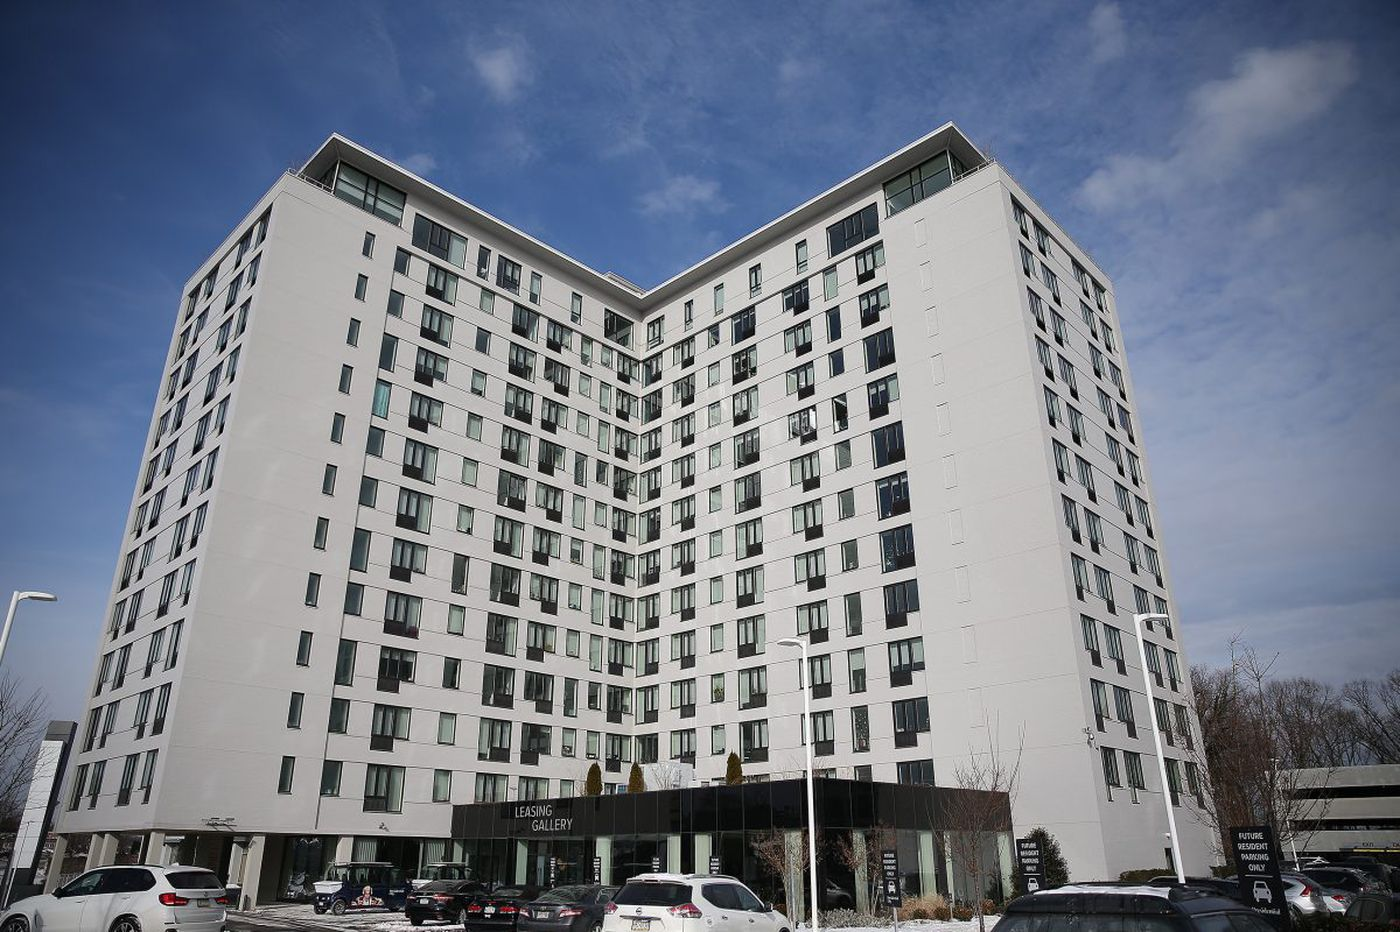 Philadelphia apartment rent in March: One-bedrooms flat, two-bedrooms up modestly